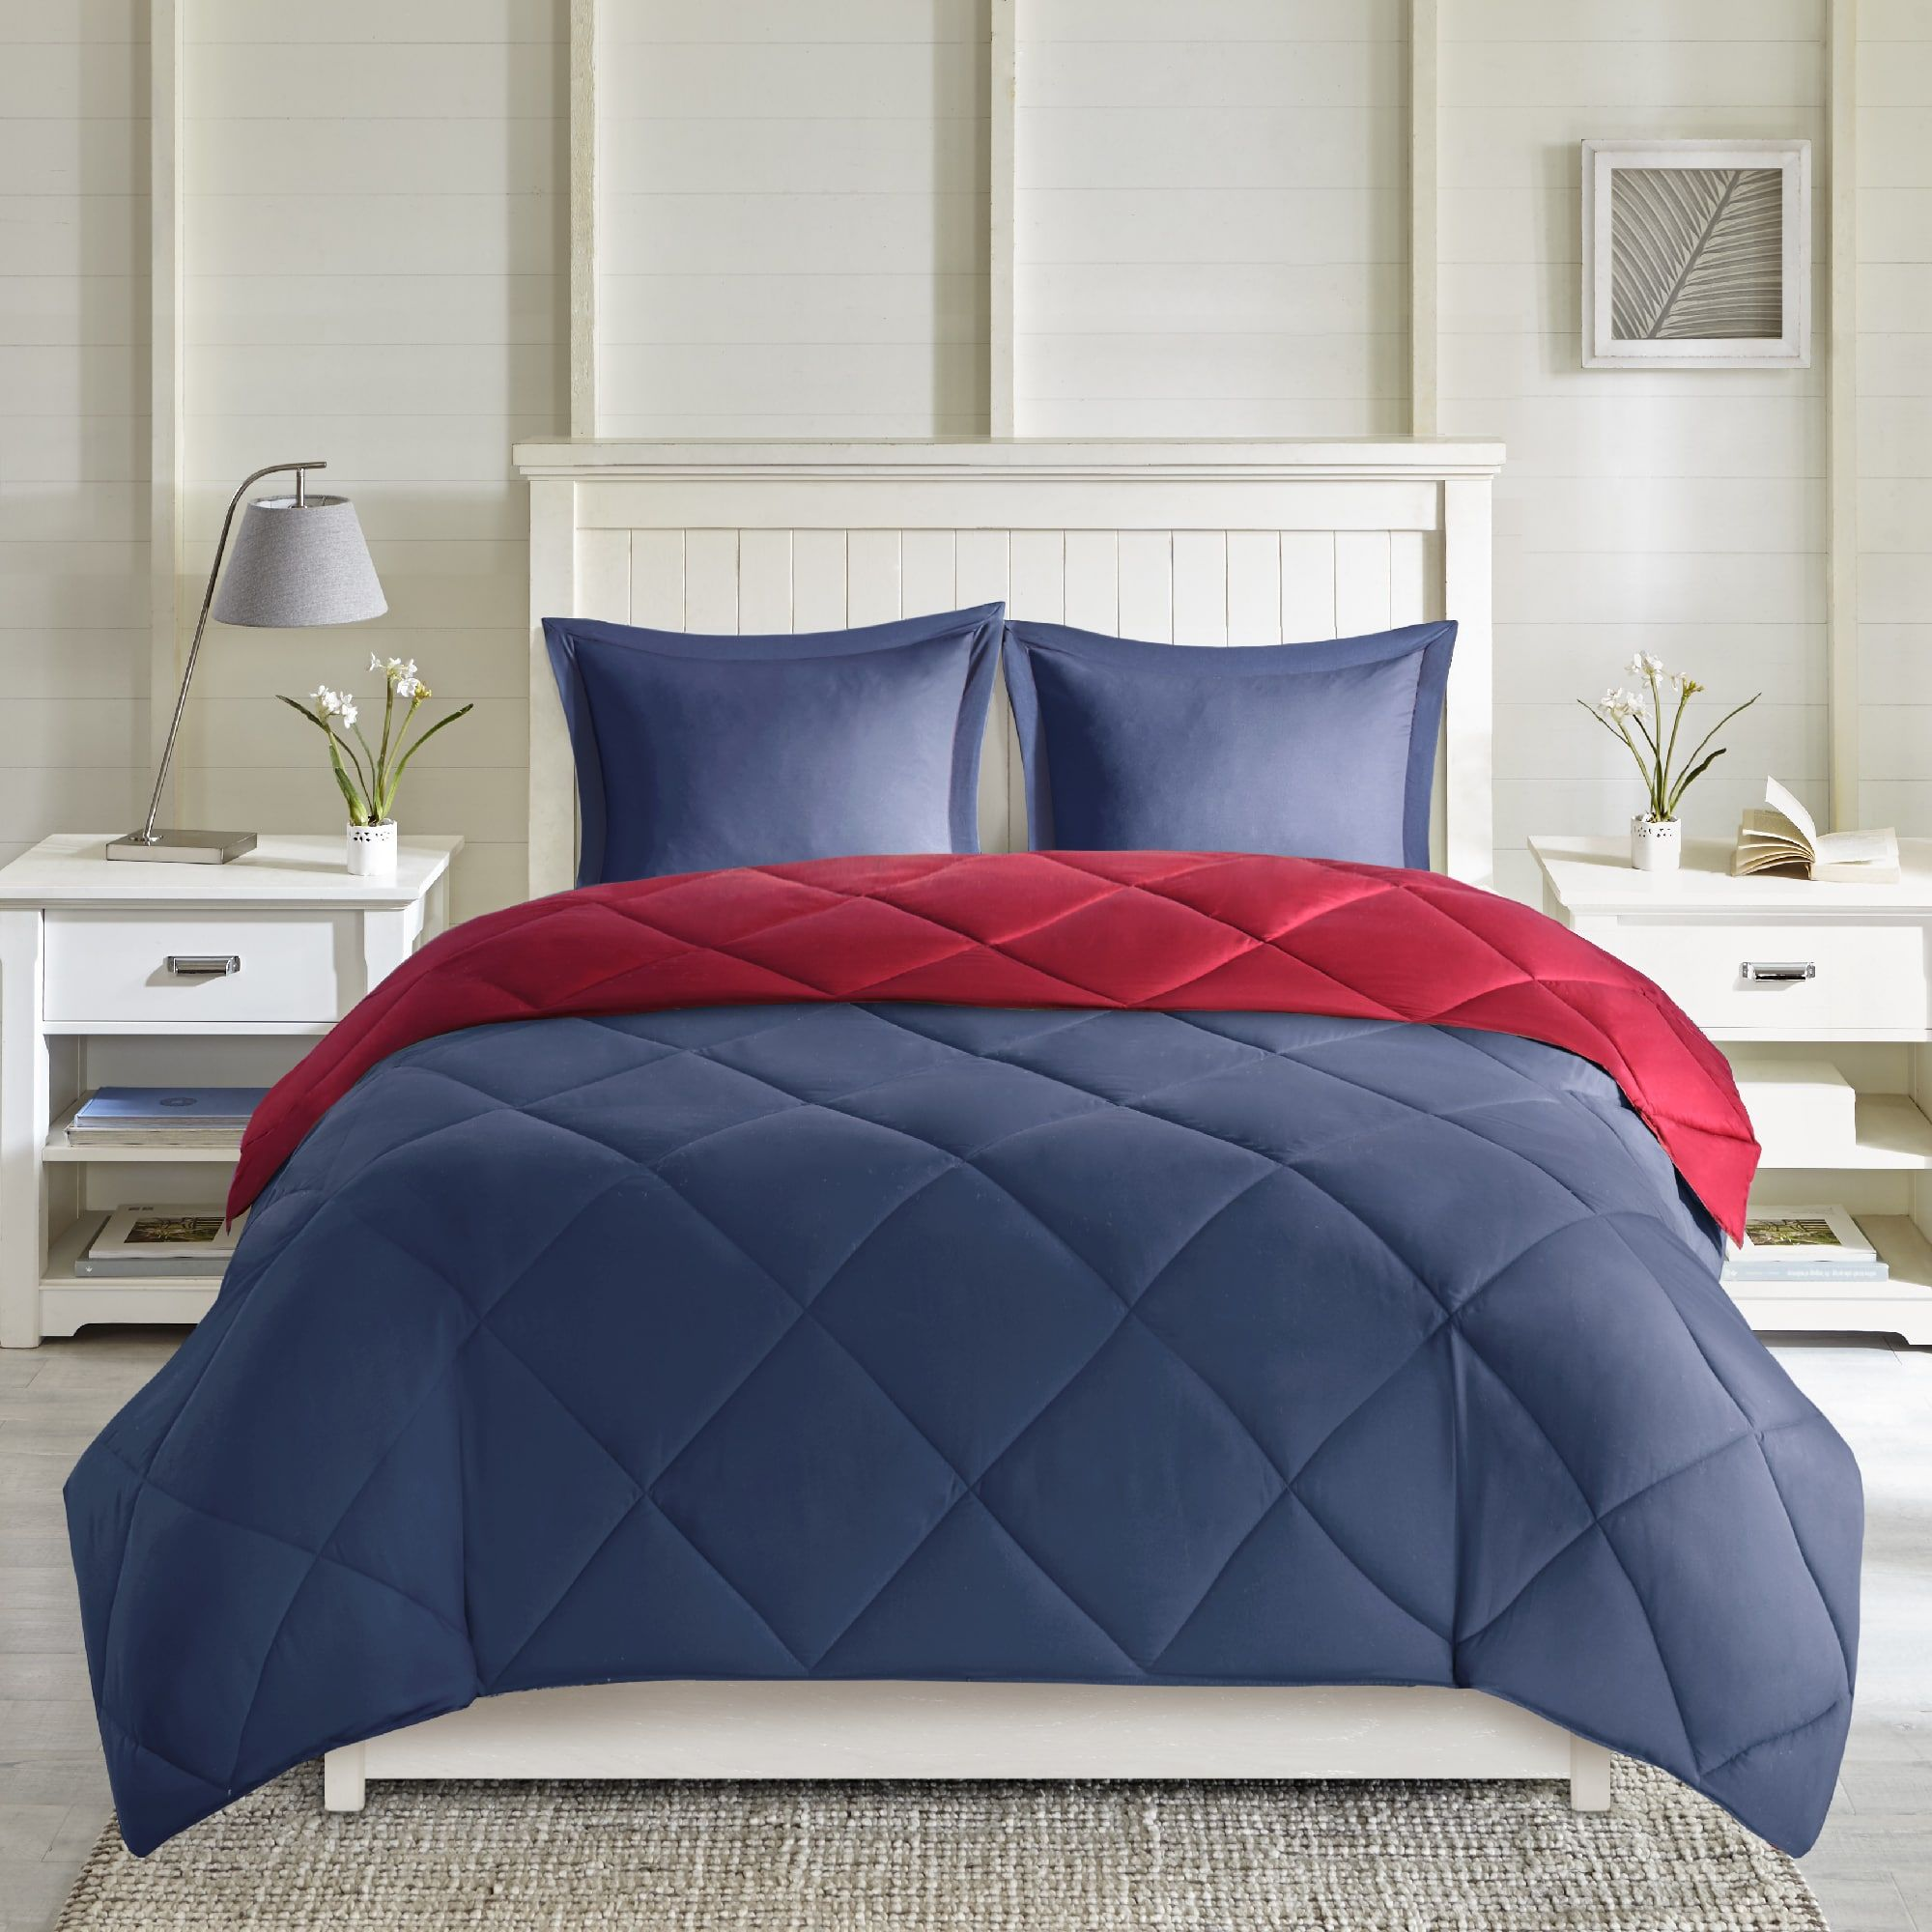 reversible size set comfort itm geometrical and stitched home classics piece mini full grey coral alternative comforter spaces queen pattern down vixie